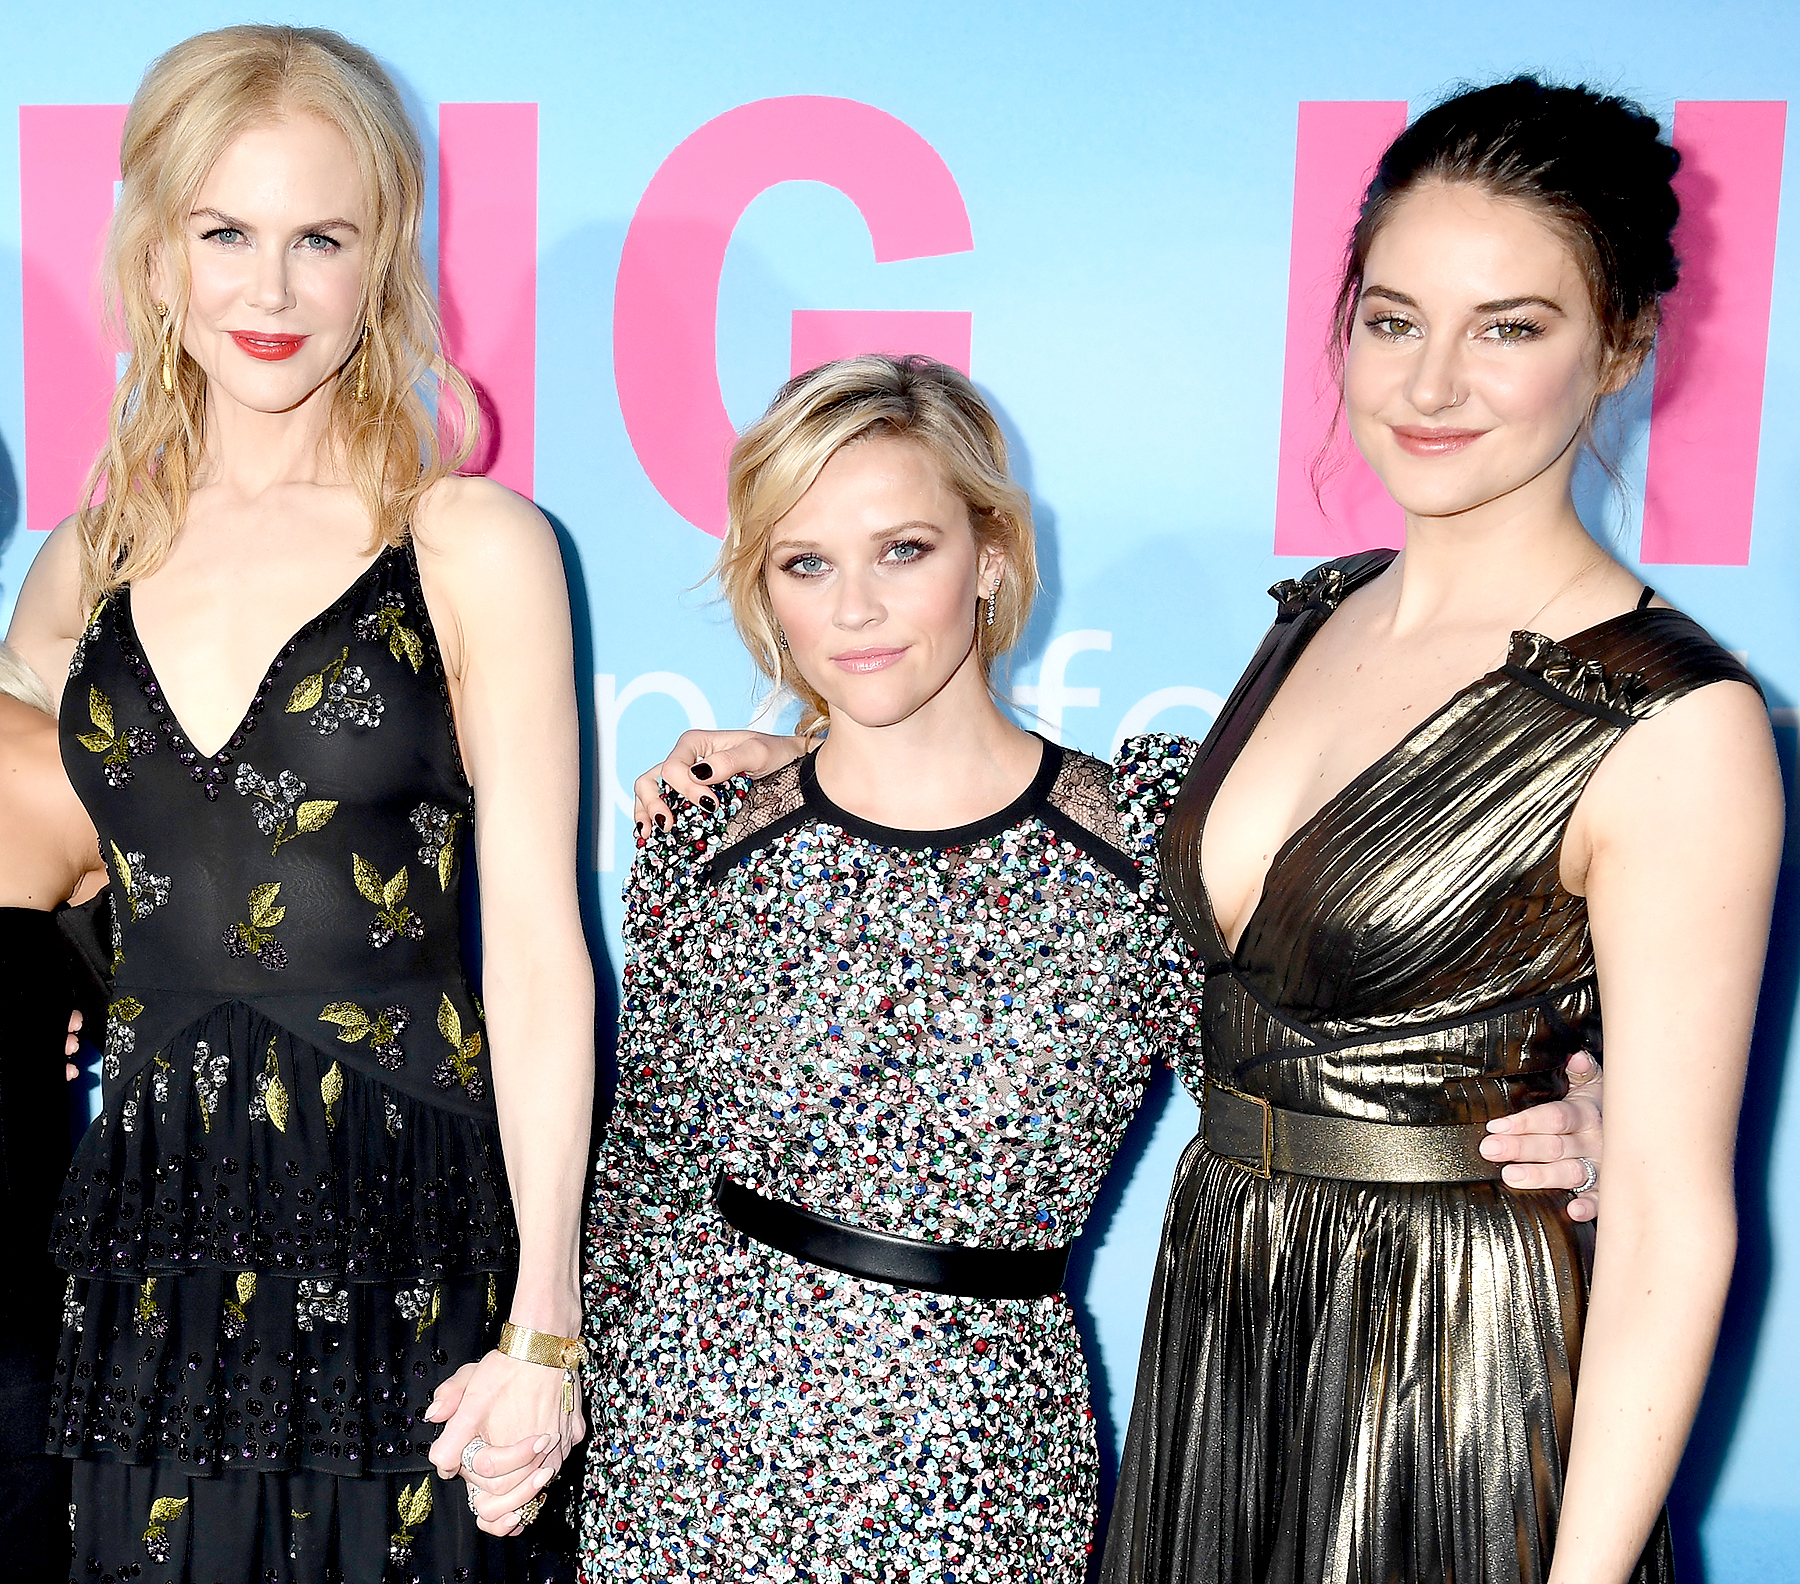 Nicole Kidman, Reese Witherspoon and Shailene Woodley attend the premiere of HBO's 'Big Little Lies' at the TCL Chinese Theater on February 7, 2017 in Hollywood, California.